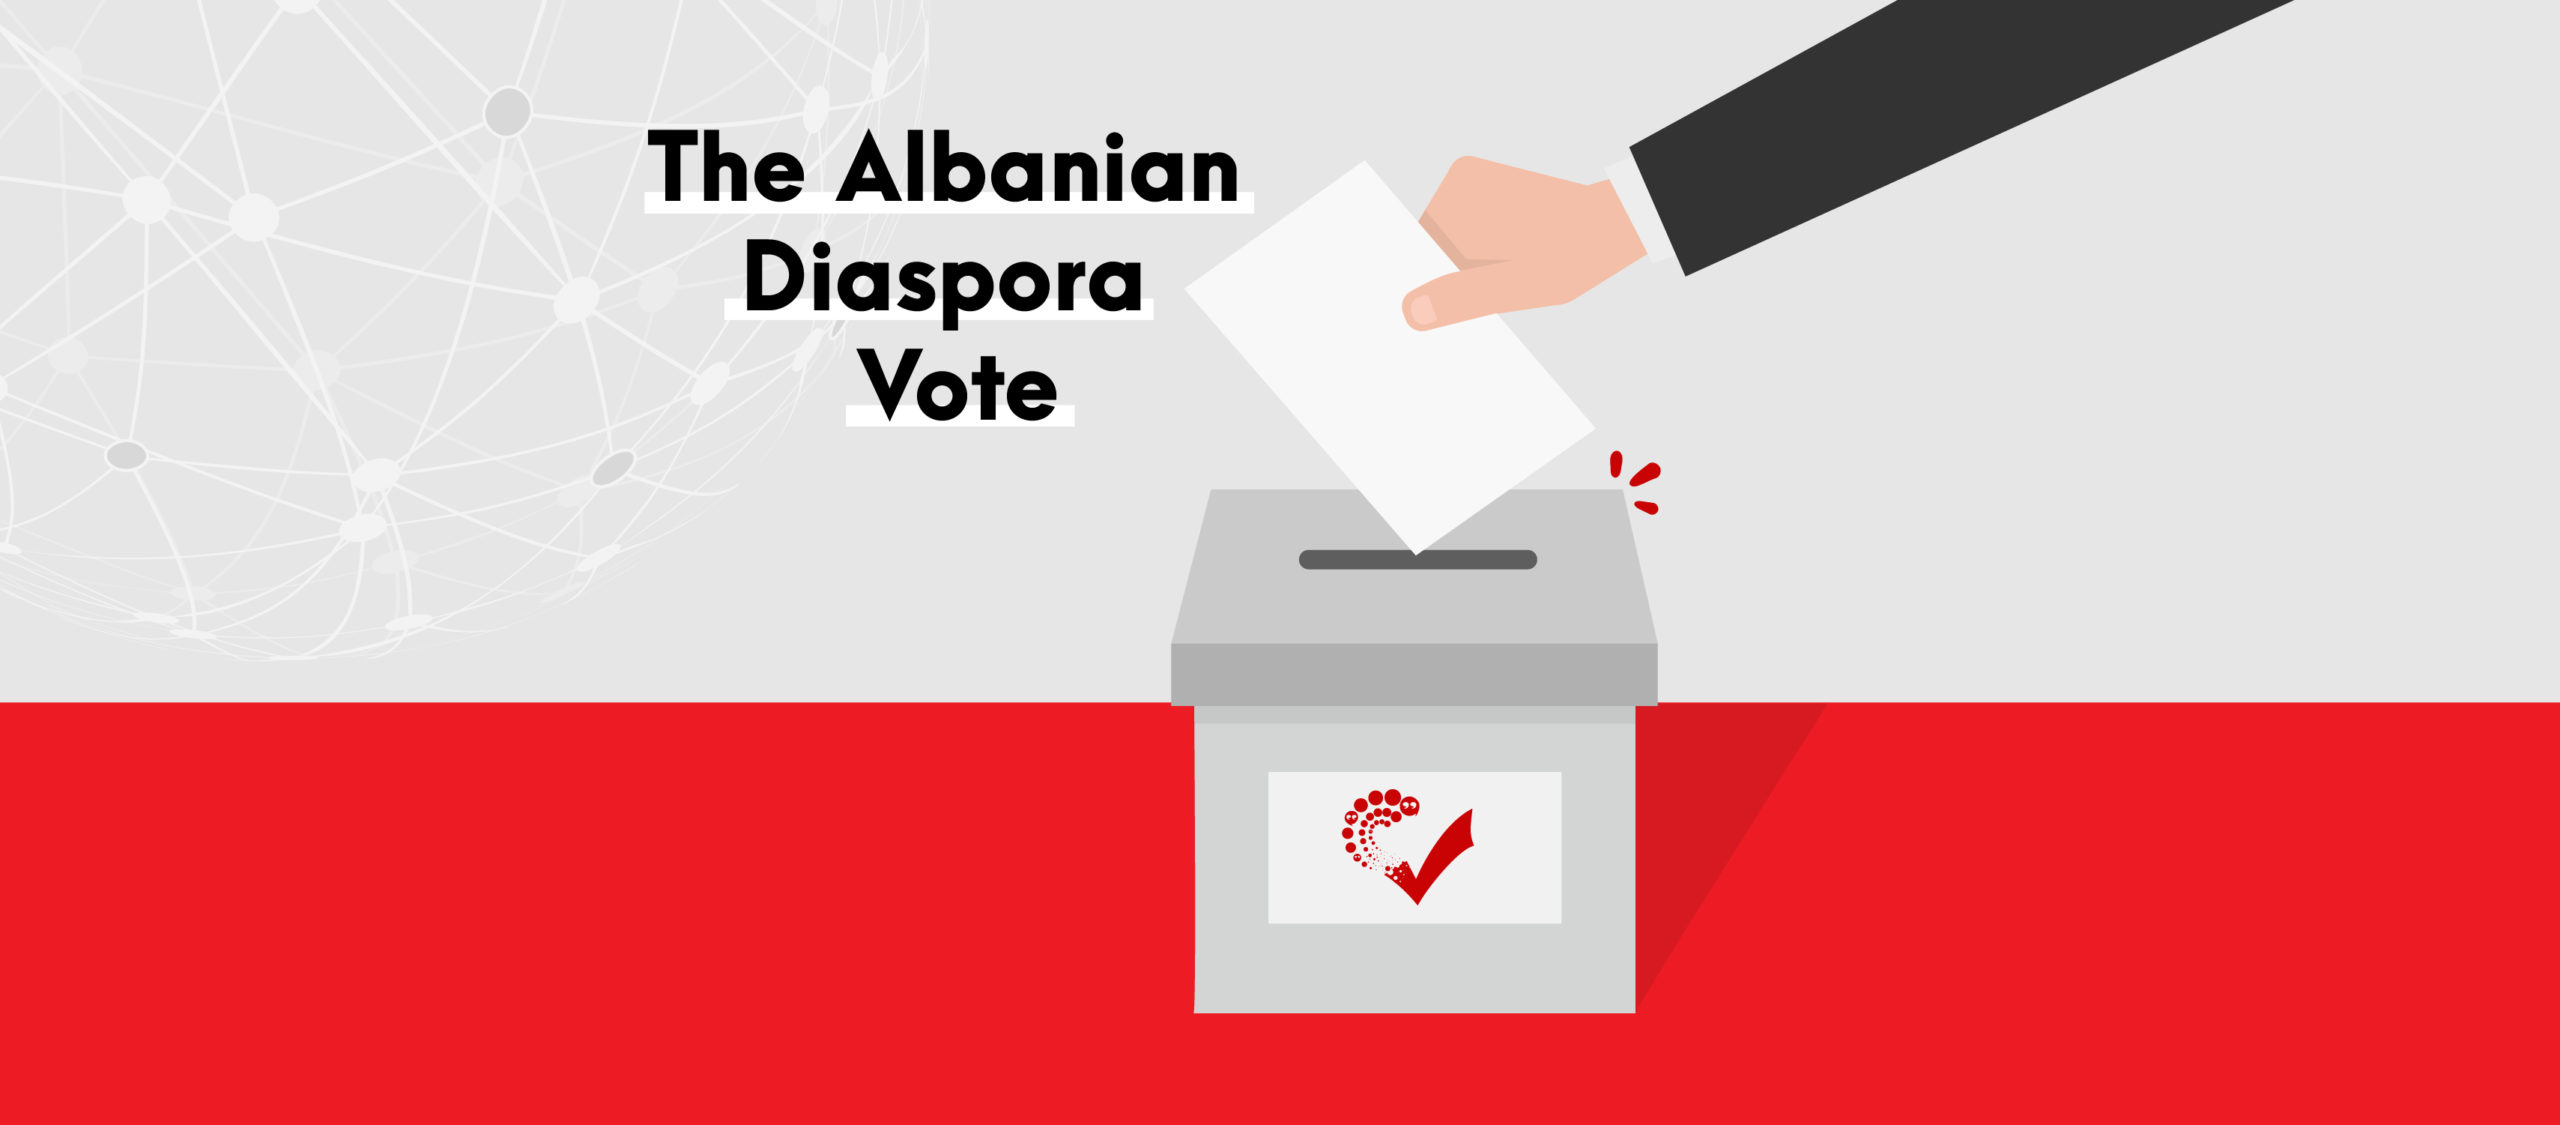 The Albanian Diaspora Vote: Infusing Democracy in Albania